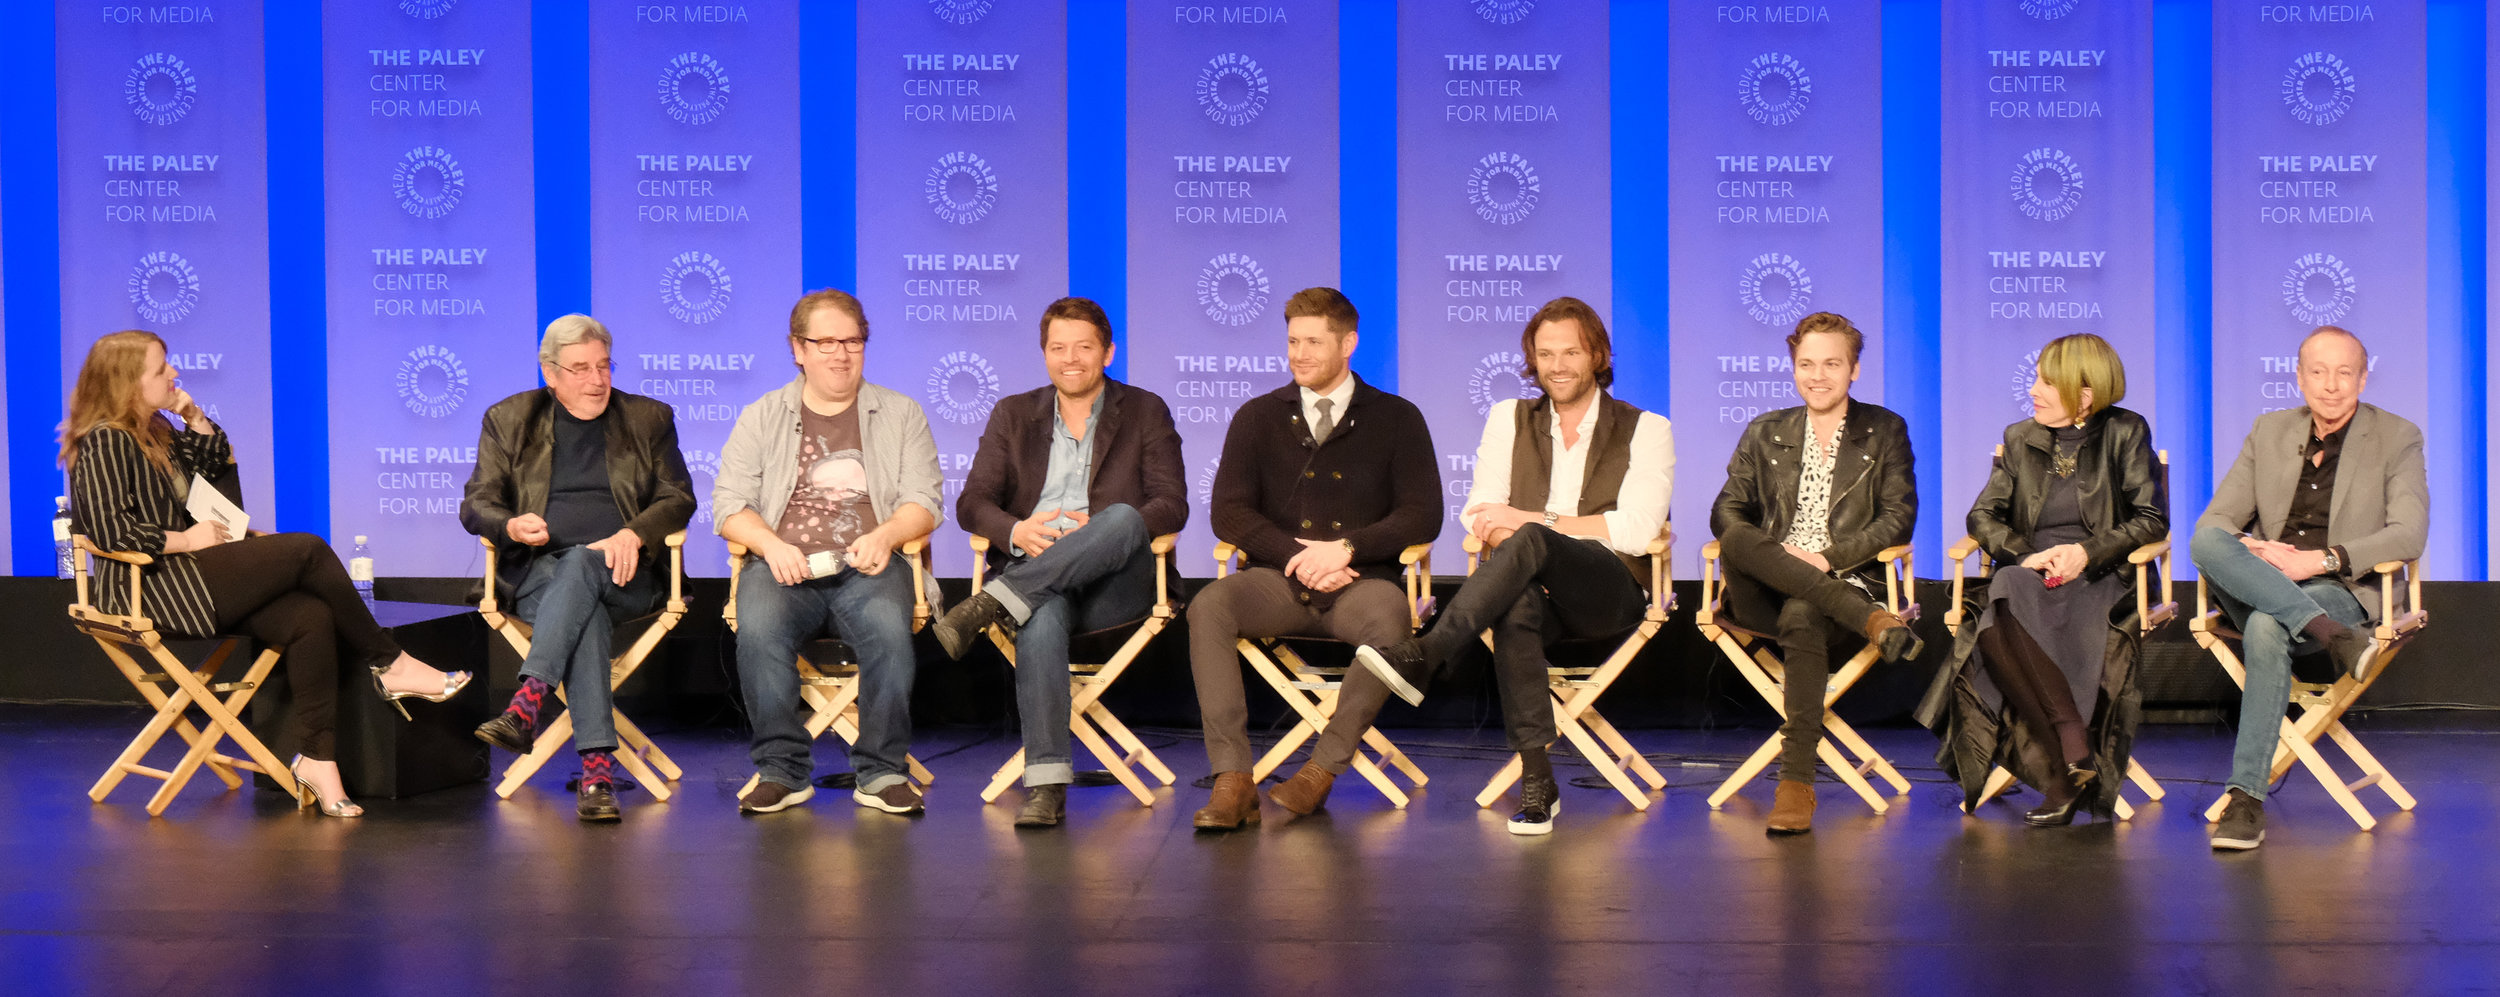 (L-R): Entertainment Weekly's Samantha Highfill with the cast and creatives of Supernatural at PaleyFest LA 2018 honoring Supernatural, presented by The Paley Center for Media, at the DOLBY THEATRE on March 20, 2018 in Hollywood, California. Photo Credit:Emily Kneeter for the Paley Center